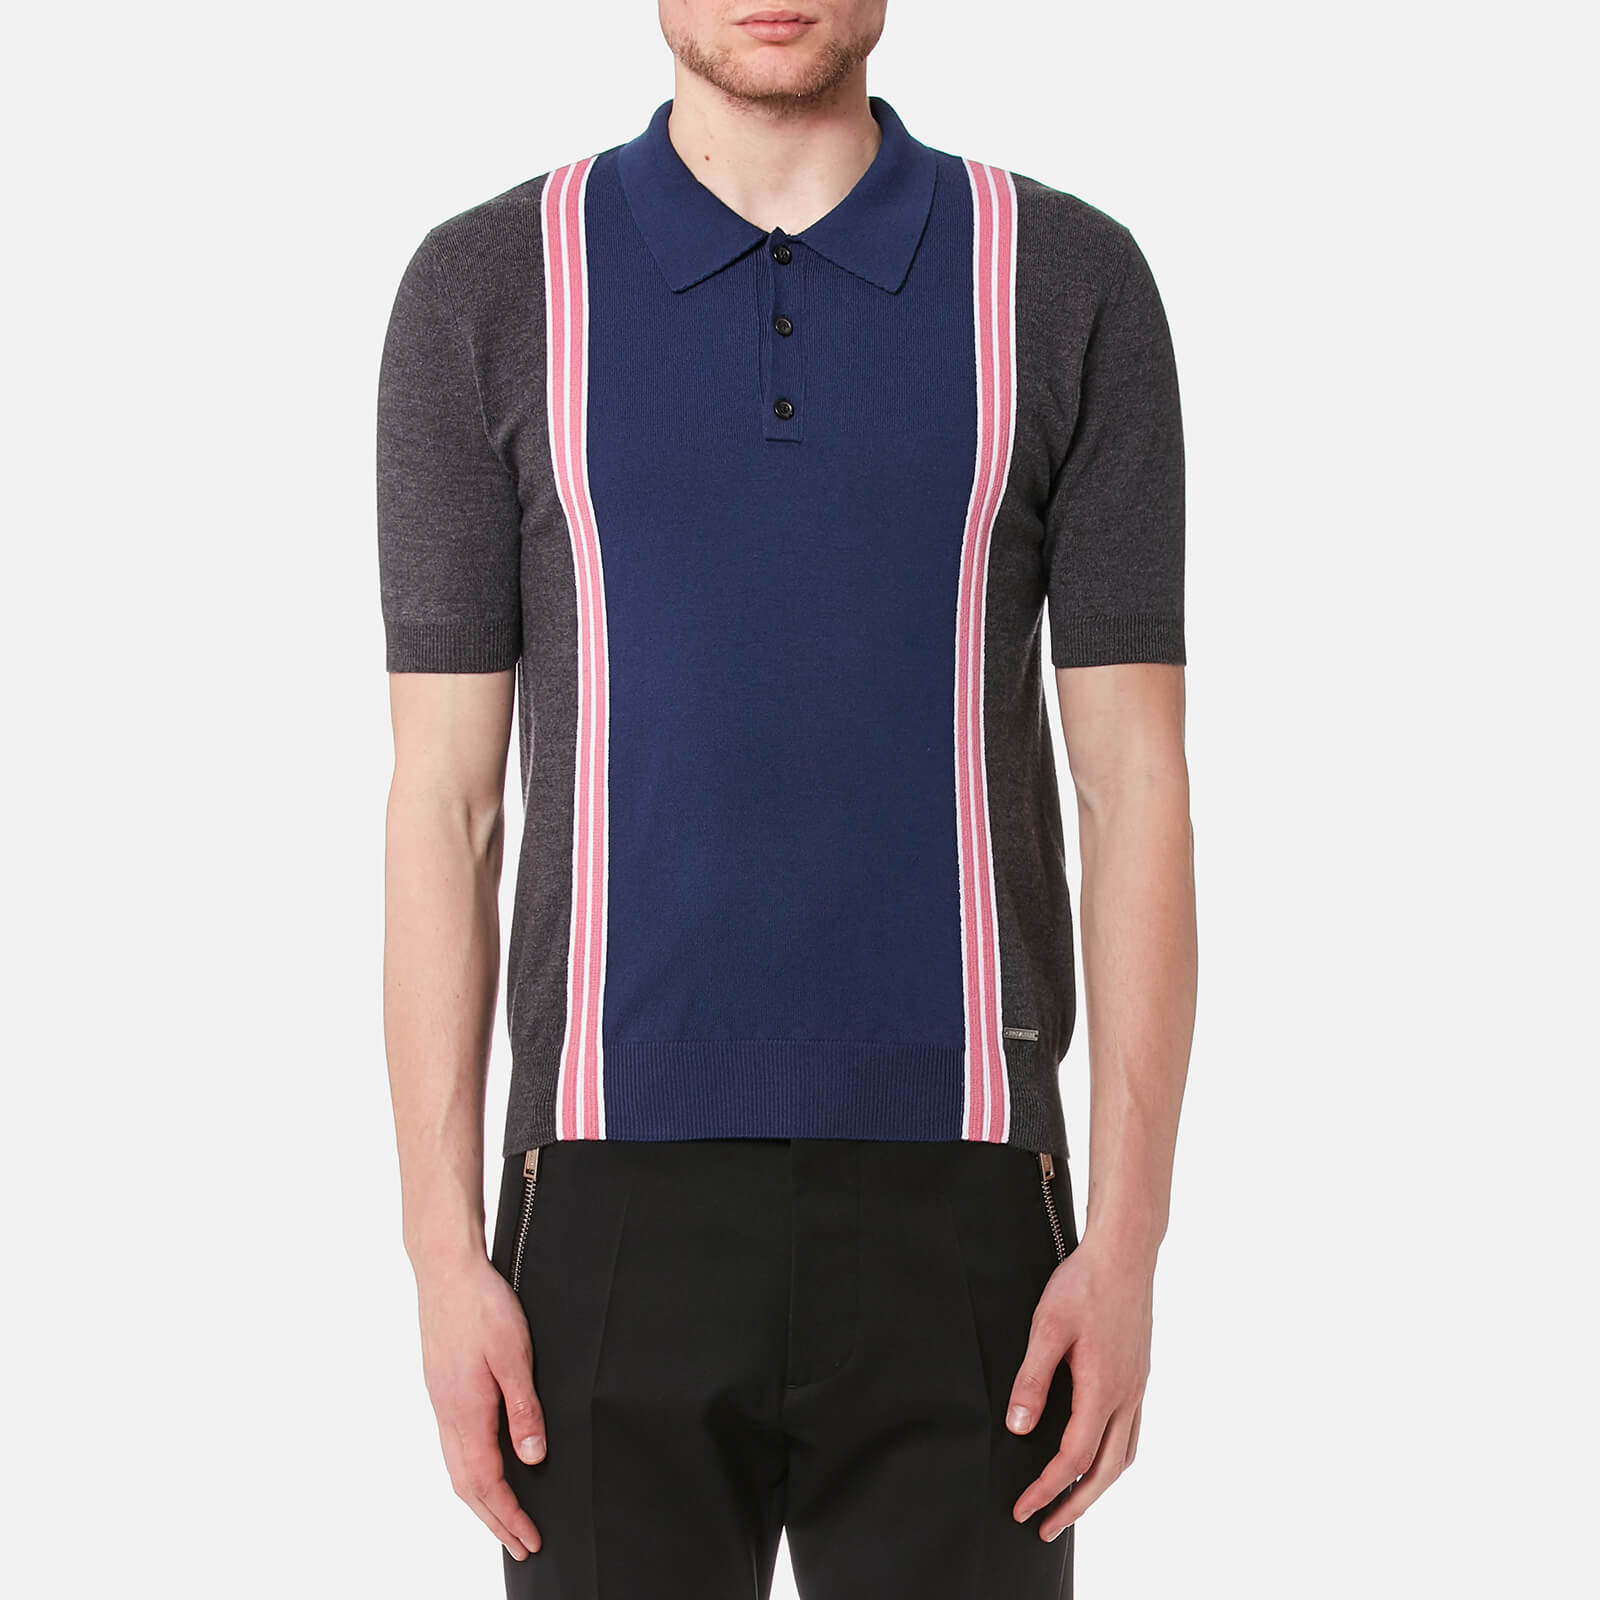 42faad41 Dsquared2 Men's 3 Button Striped Knitted Polo Shirt - Grey/White/Pink -  Free UK Delivery over £50